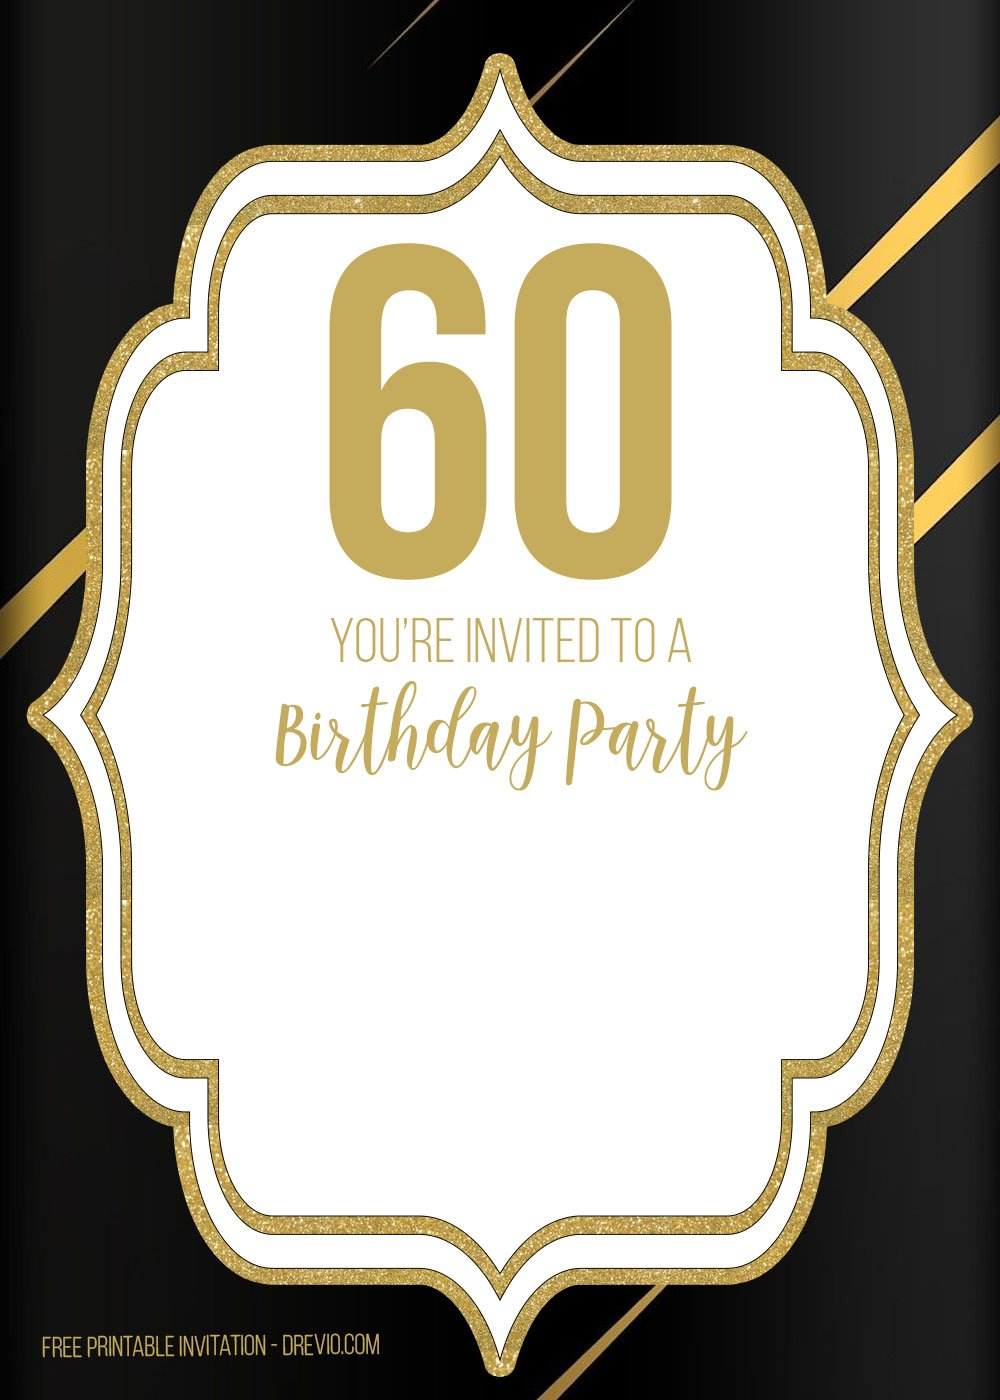 FREE 60th Birthday Invitation Template Elegant Shiny Black Download It Below